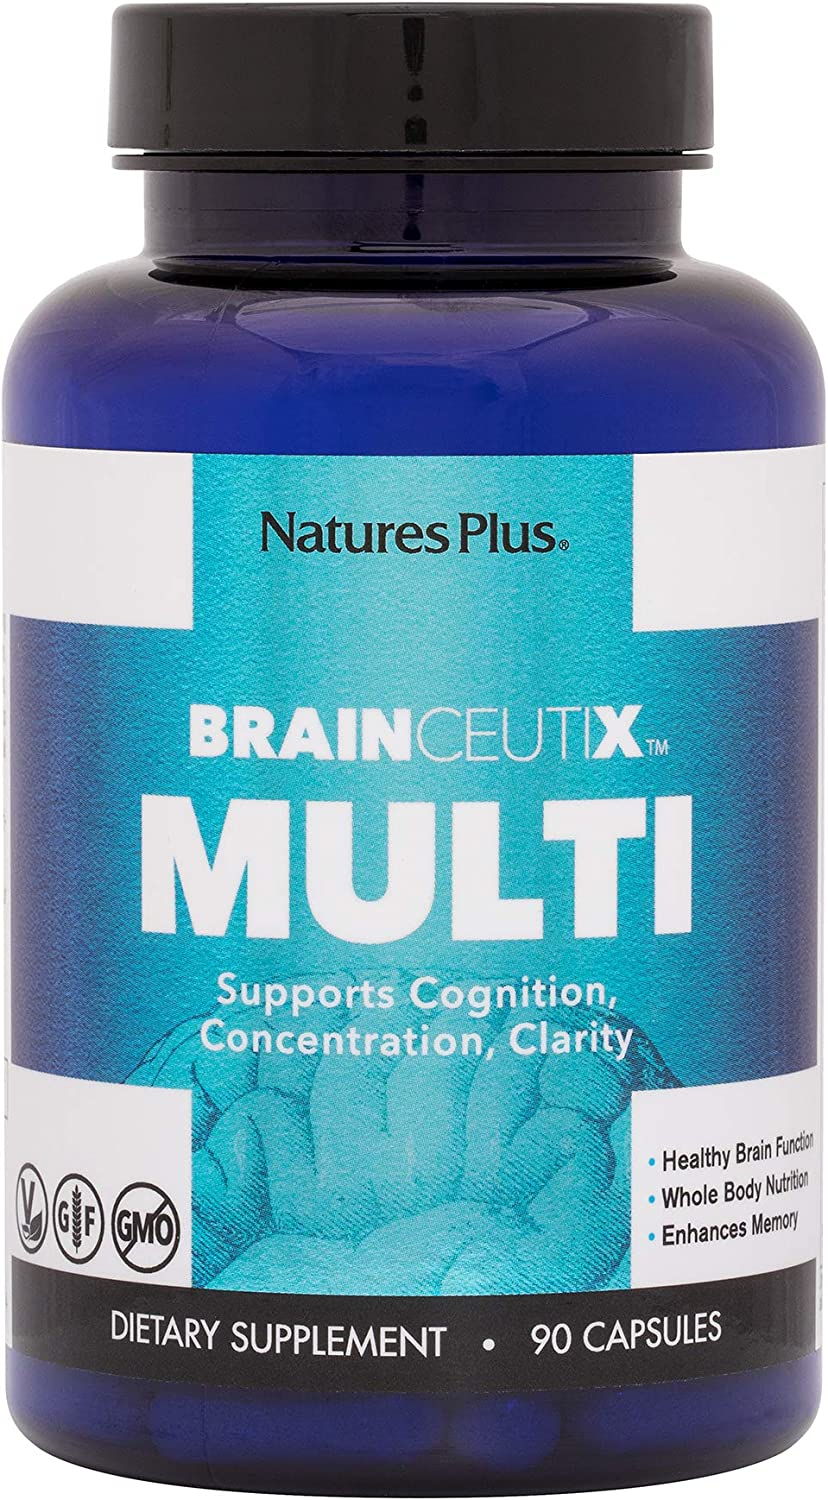 BrainCeutix by NaturesPlus Brain Supplement Nootropic for Memory and Focus, 90 Capsules